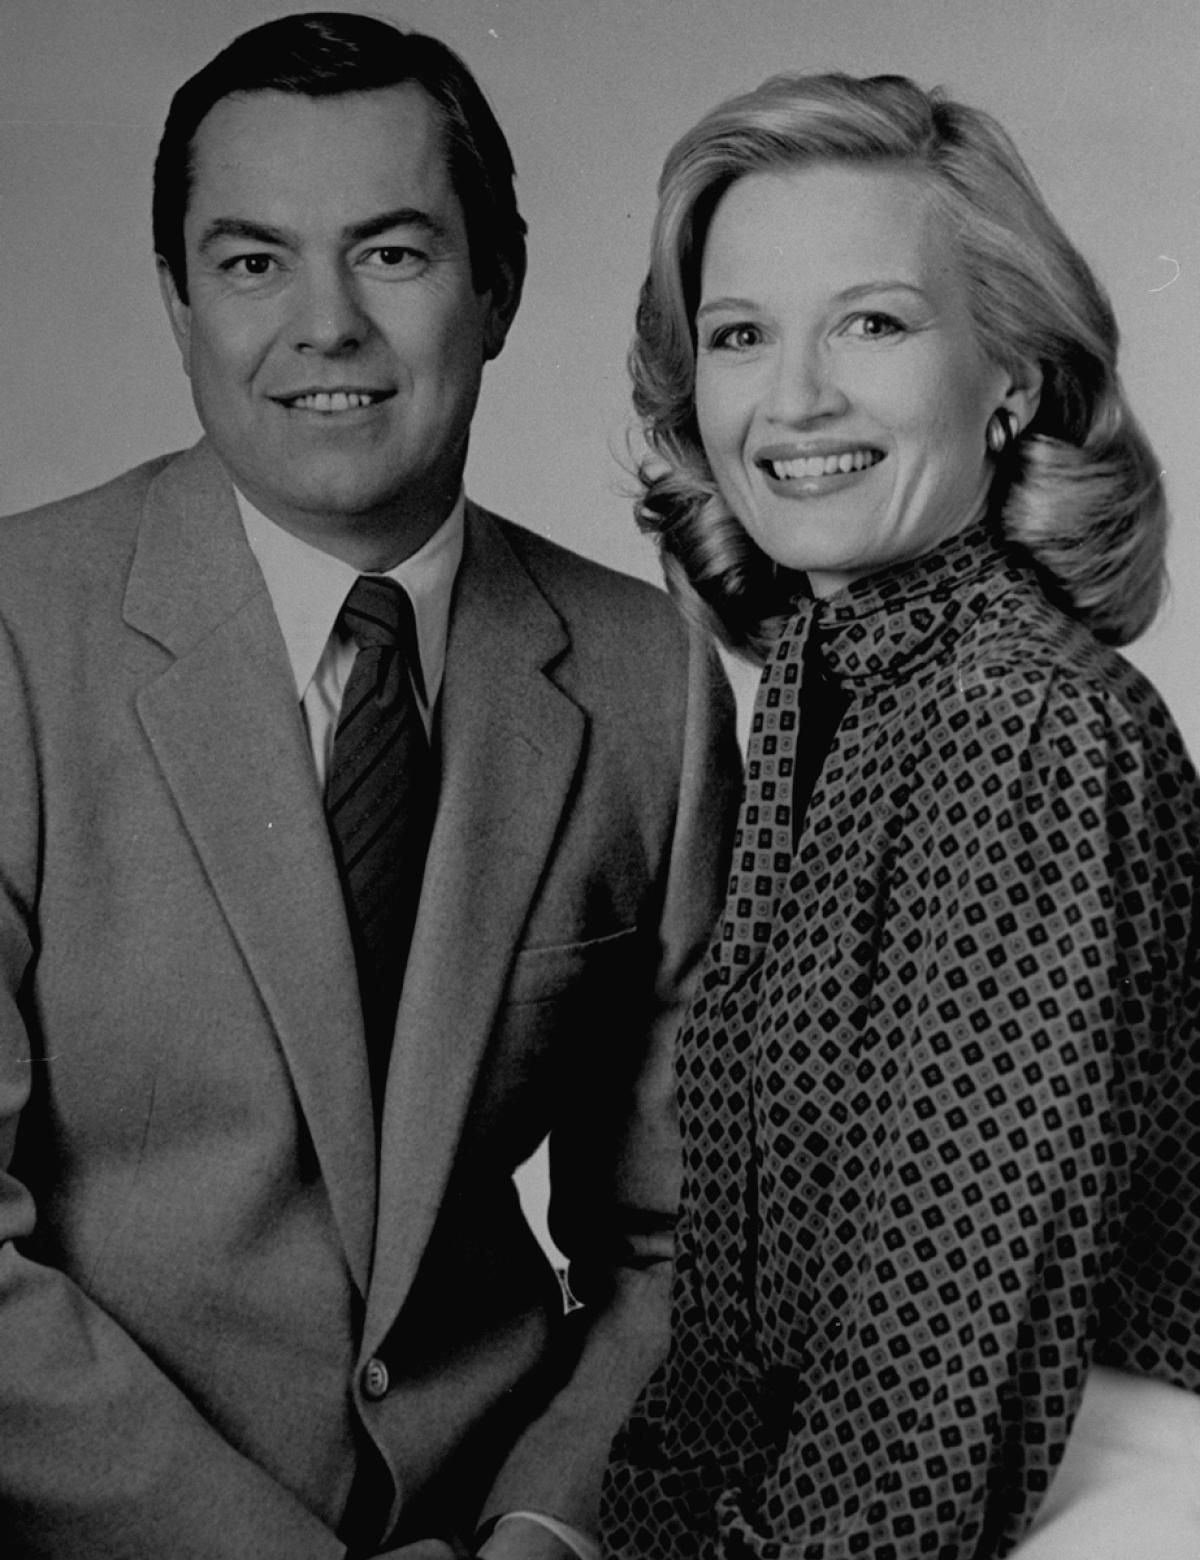 After Charles Kuralt Left The Morning News Show Sawyer Co Anc D With Bill Kurtis For Two Years Until She Left The Show In 1984 For A Position On 60